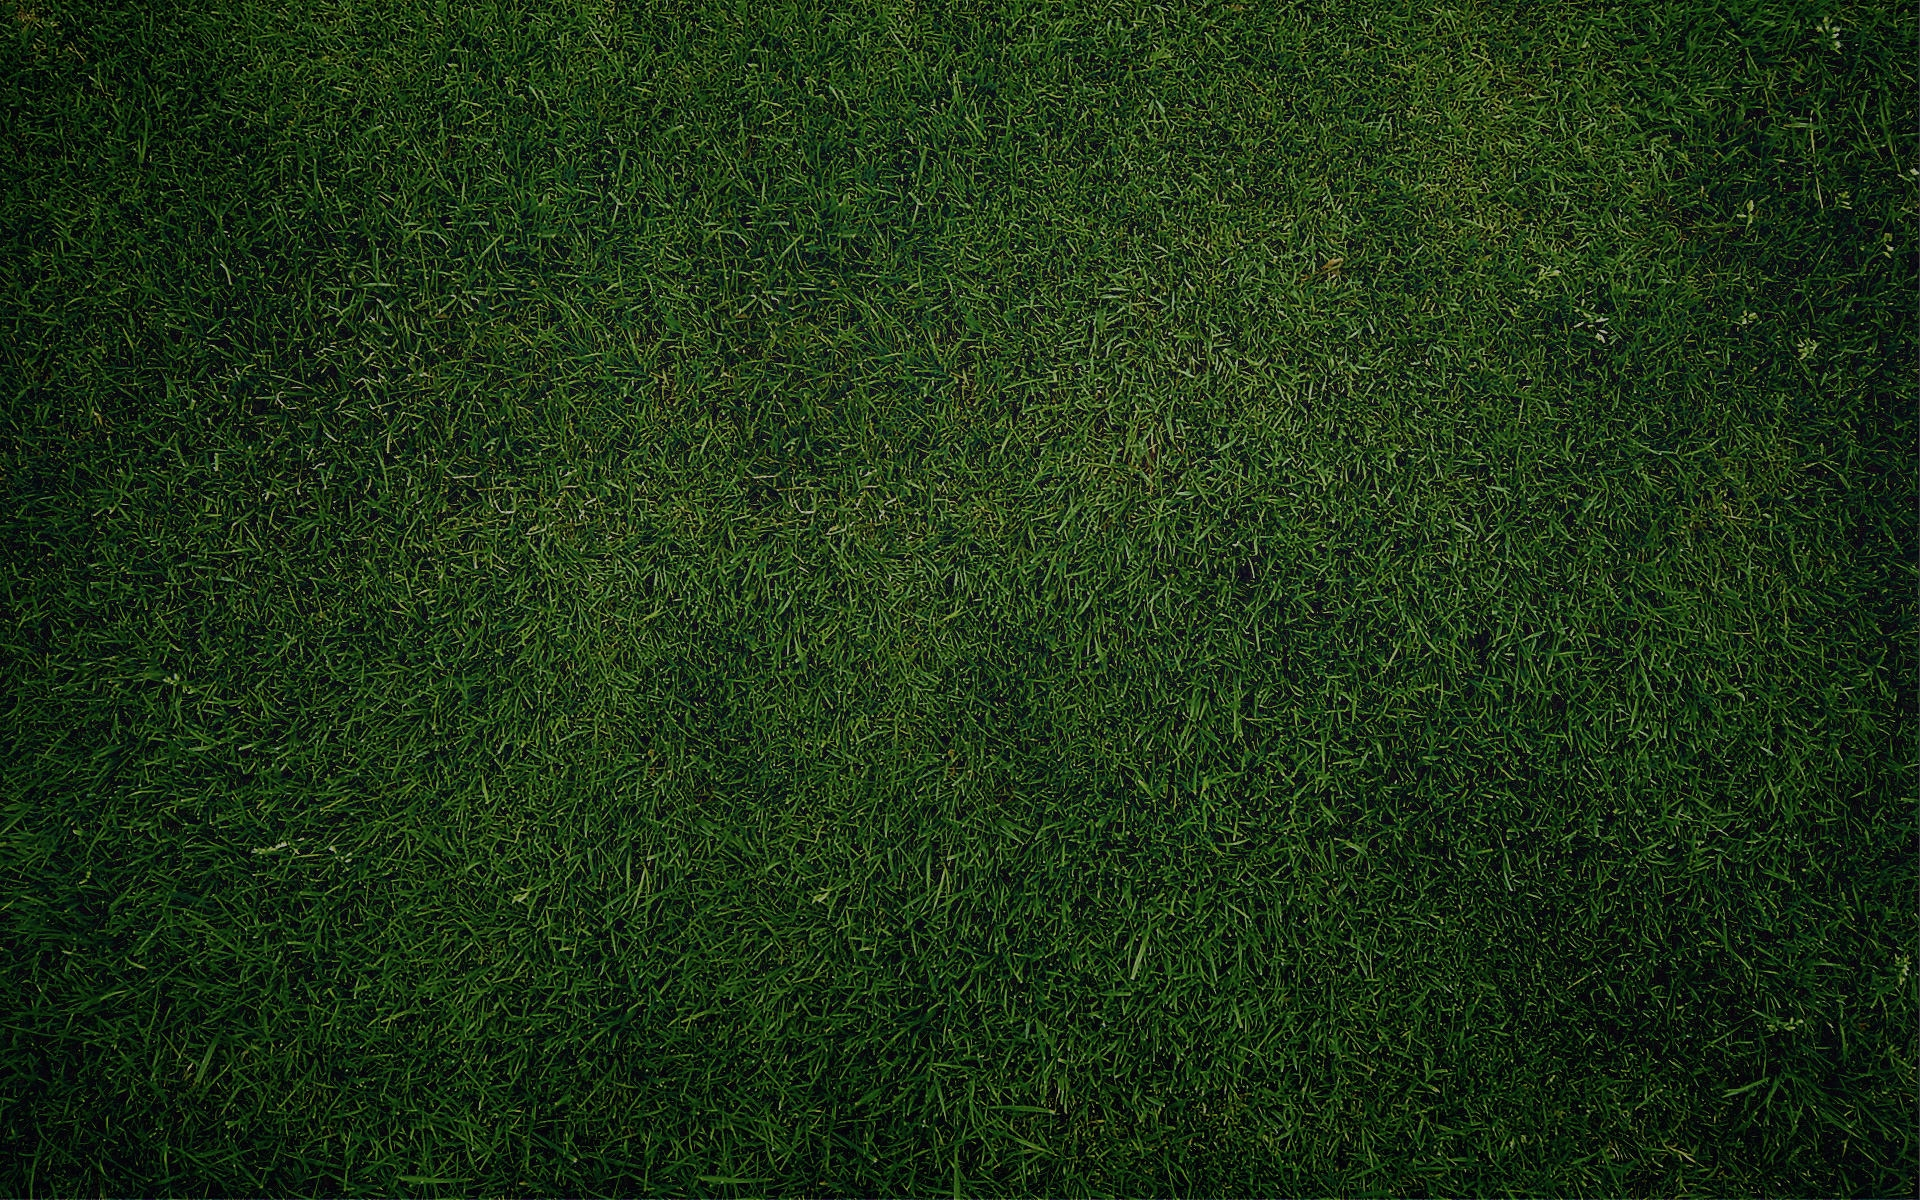 Plain Grass  Background